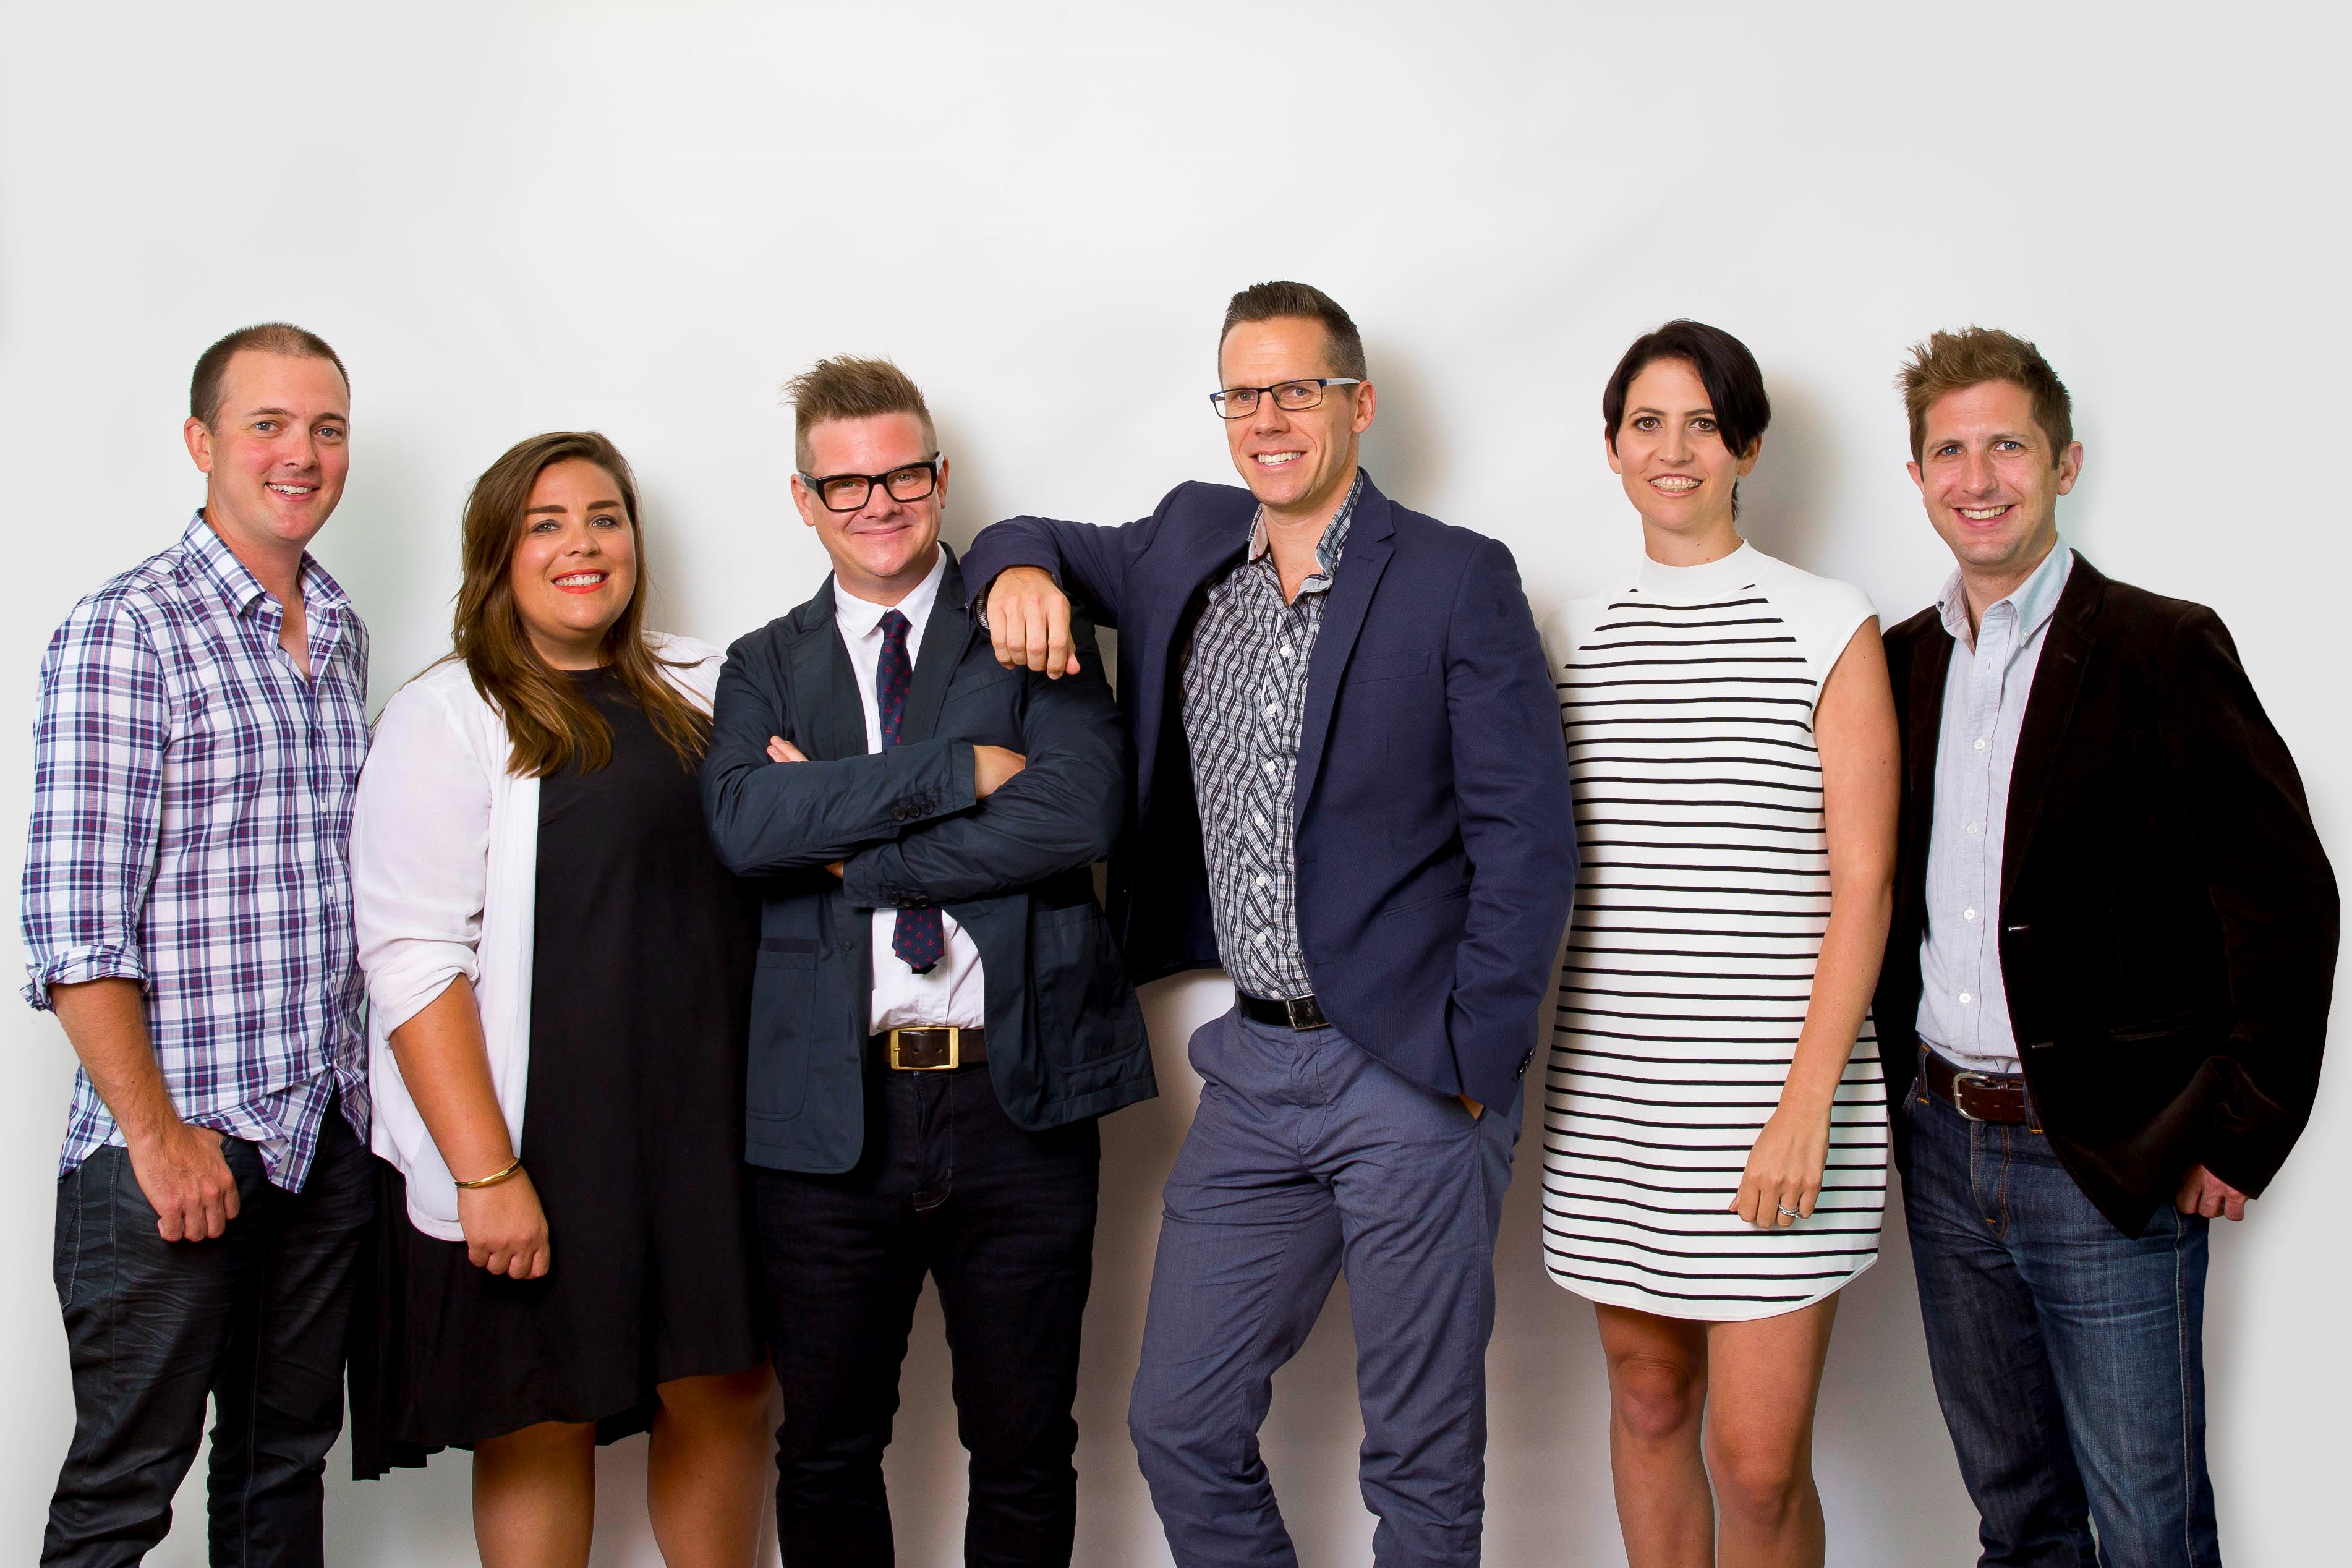 Content Marketing Firm Emotive Launches in Sydney